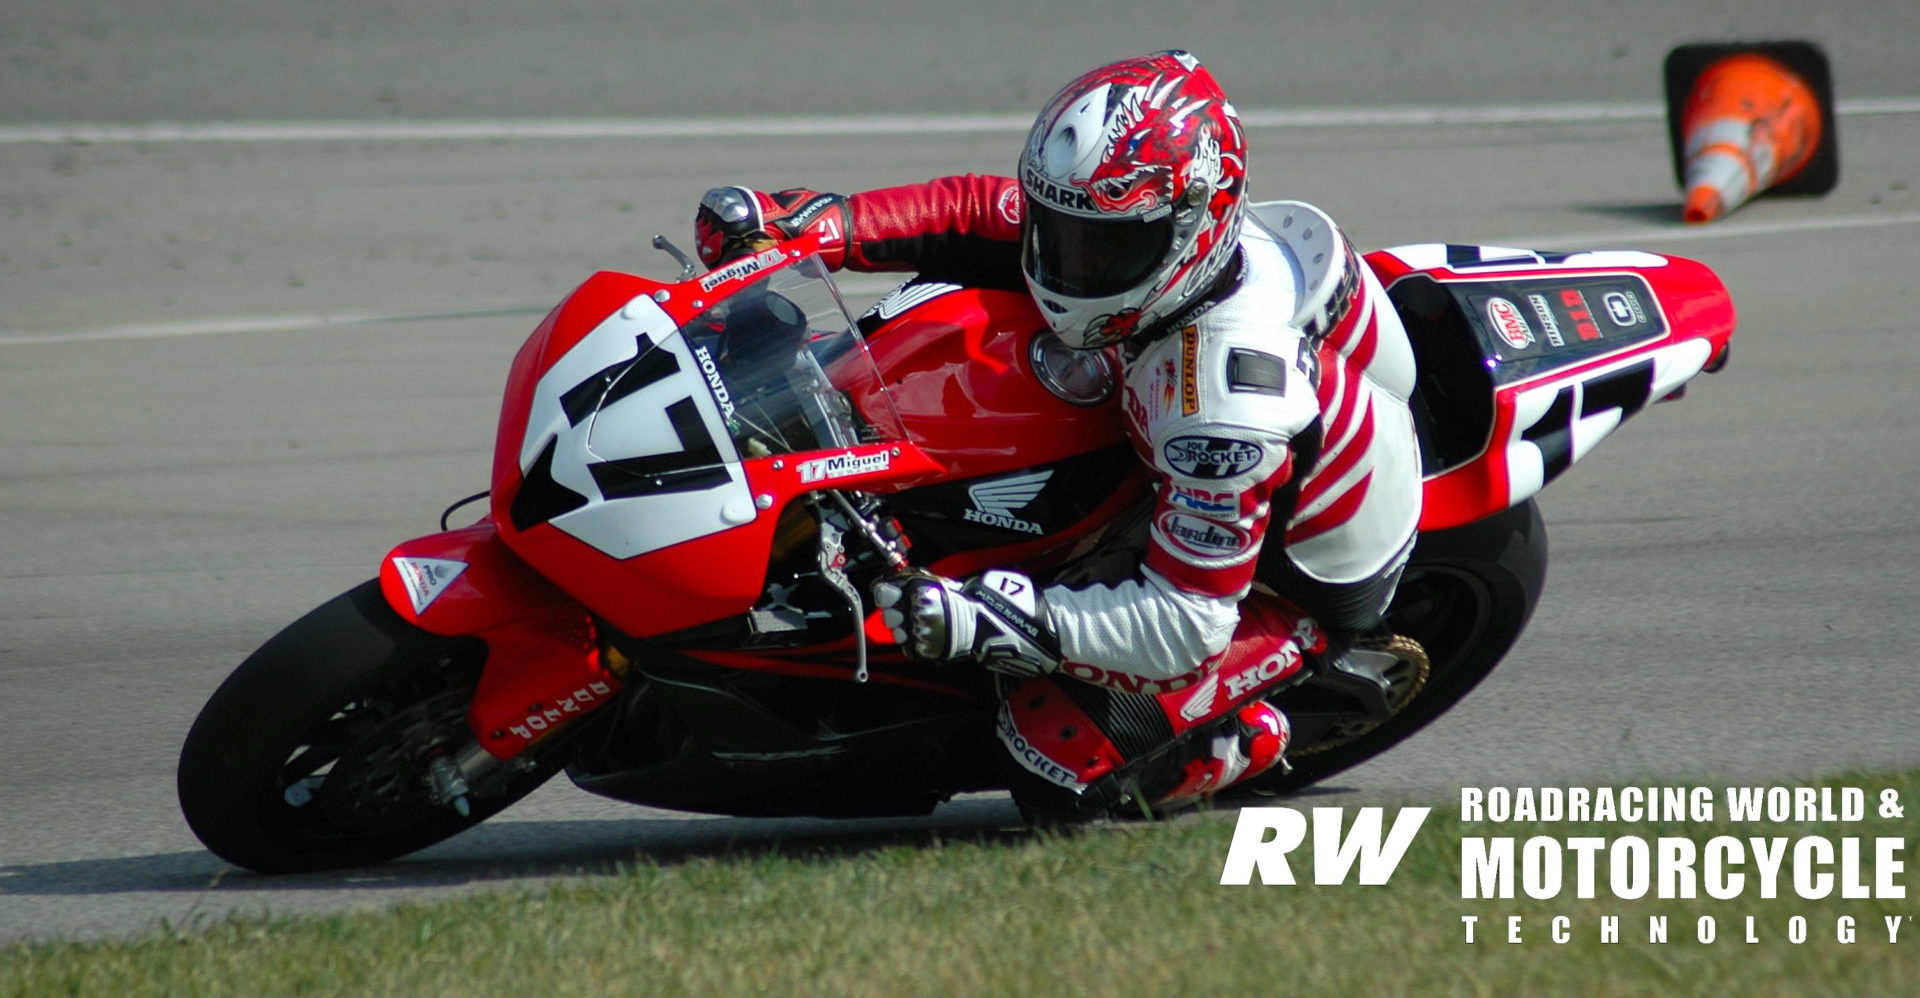 Miguel Duhamel (17), as seen testing his Honda CBR600RR AMA Pro Formula Xtreme racebike at Auto Club Speedway in 2007. Photo by David Swarts.